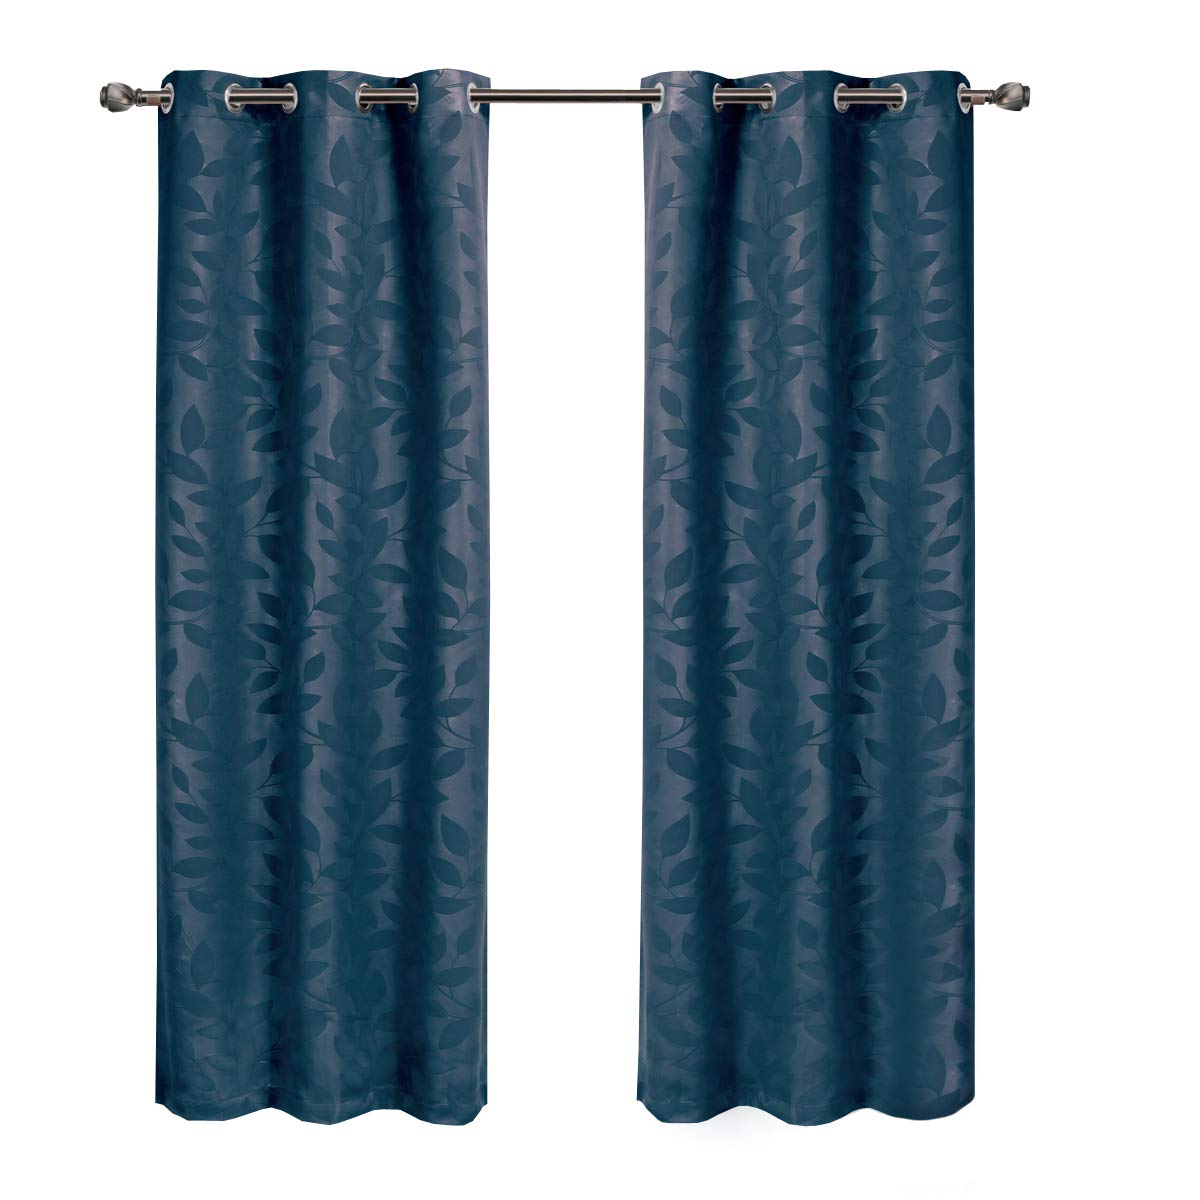 Virginia Navy Grommet Blackout Weave Embossed Window Curtain Panels, Pair / Set of 2 Panels, 37x63 inches Each, by Royal Hotel